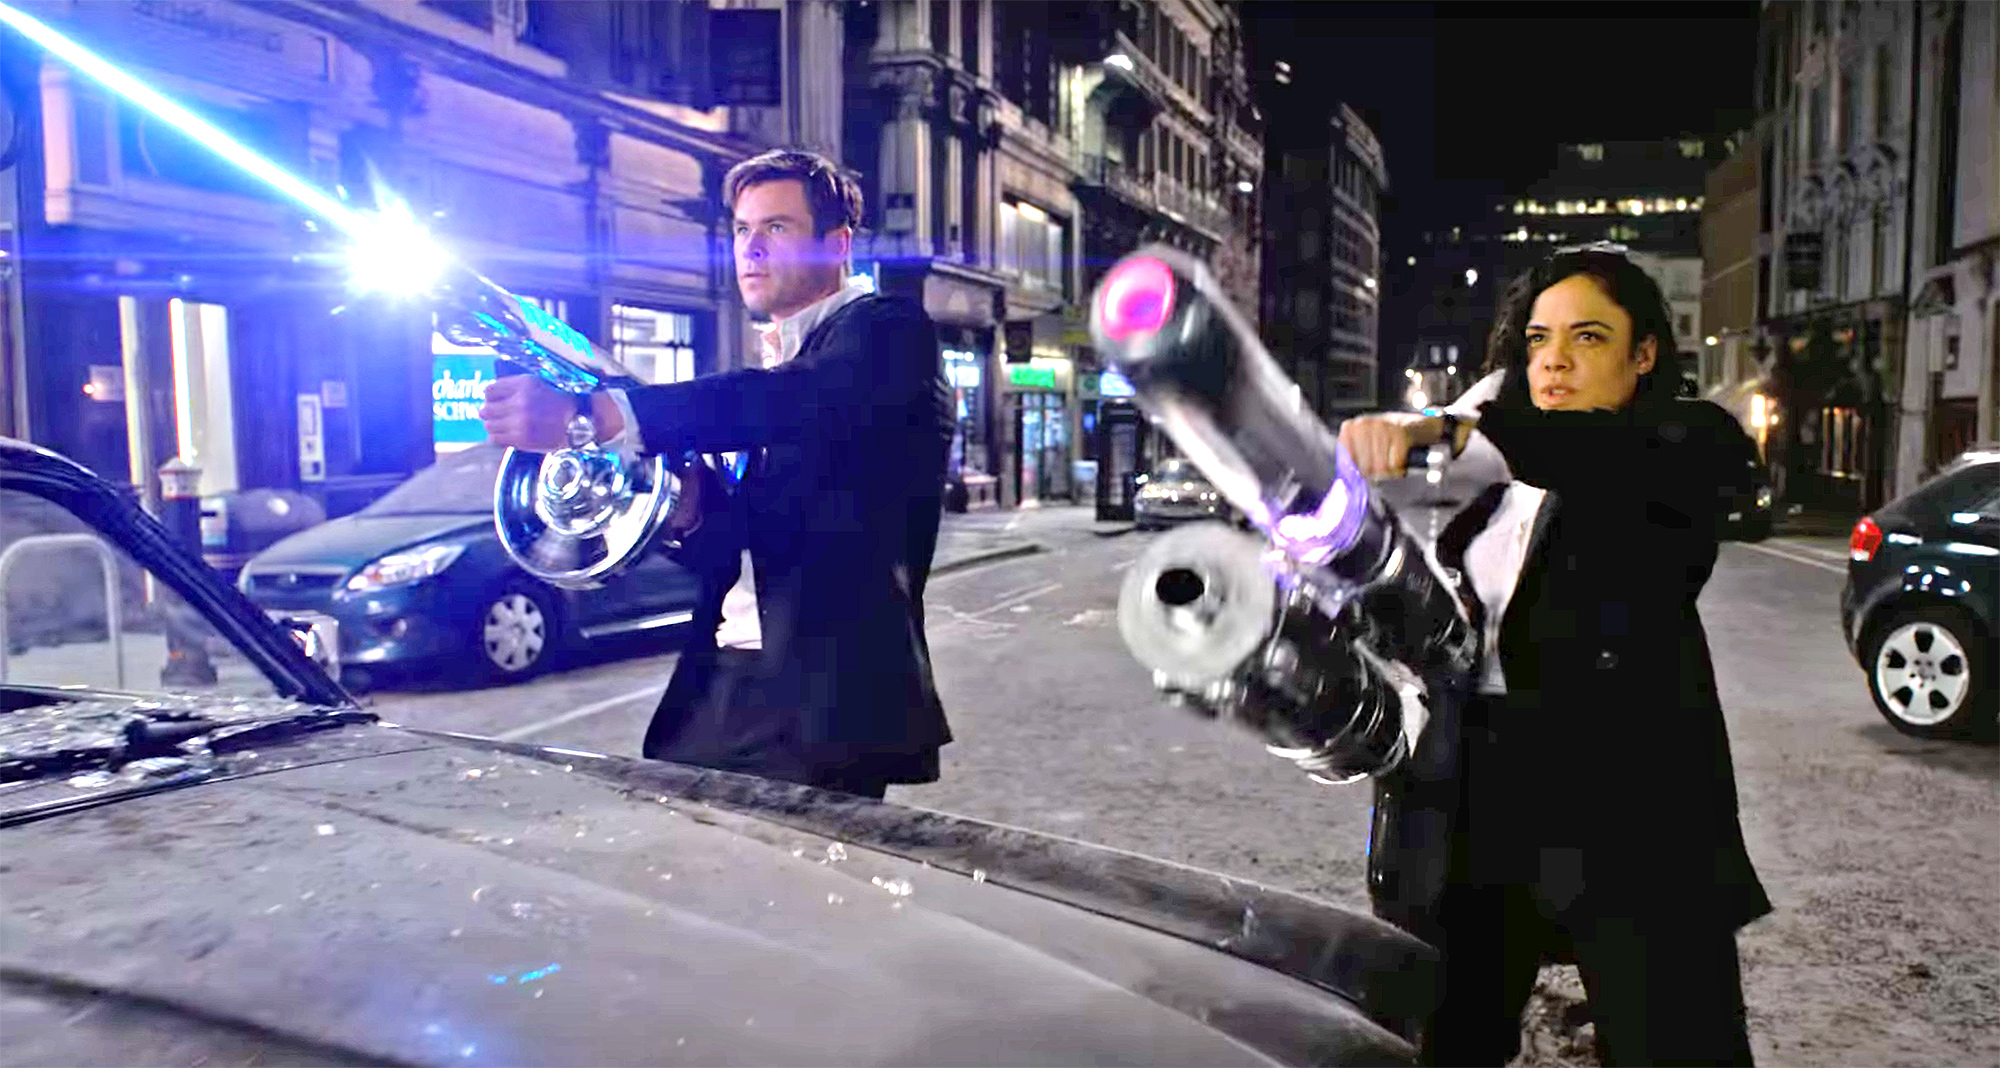 Agents M (Tessa Thompson) and H (Chris Hemsworth) wield weaponry against alien assassins in London in Men in Black: International (2019)